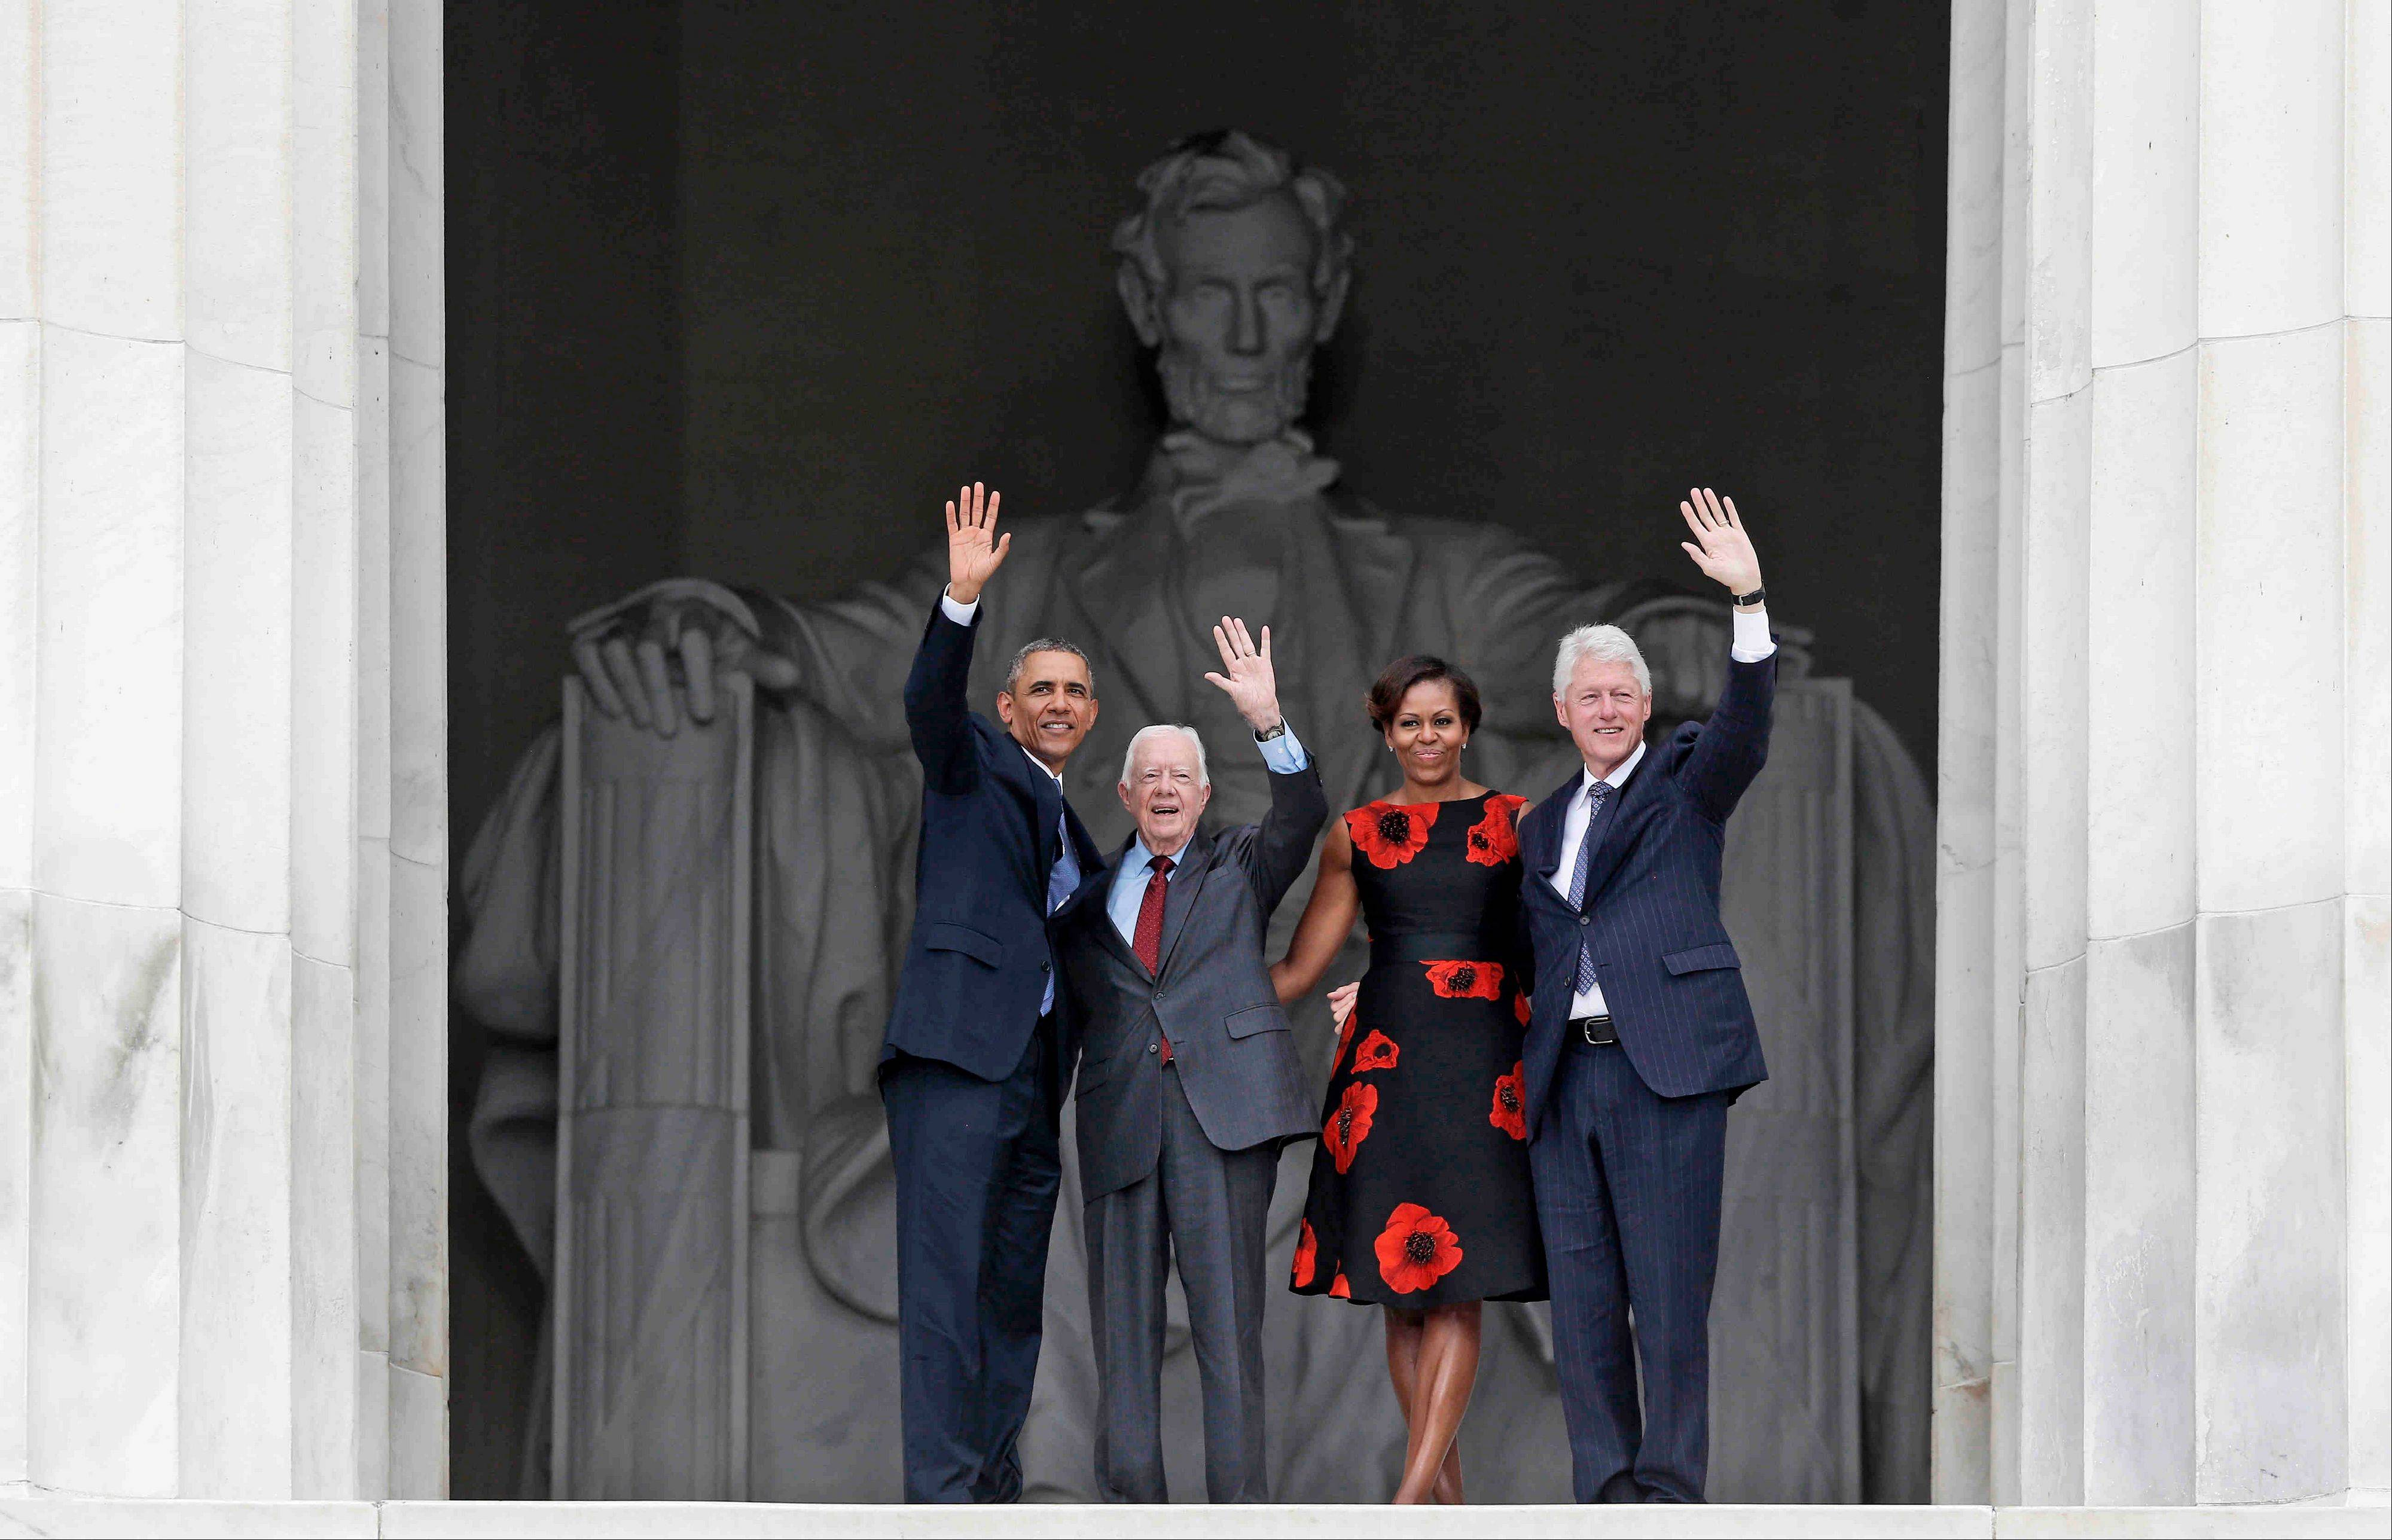 President Barack Obama, first lady Michelle Obama, former President Jimmy Carter and former President Bill Clinton wave as they leave.